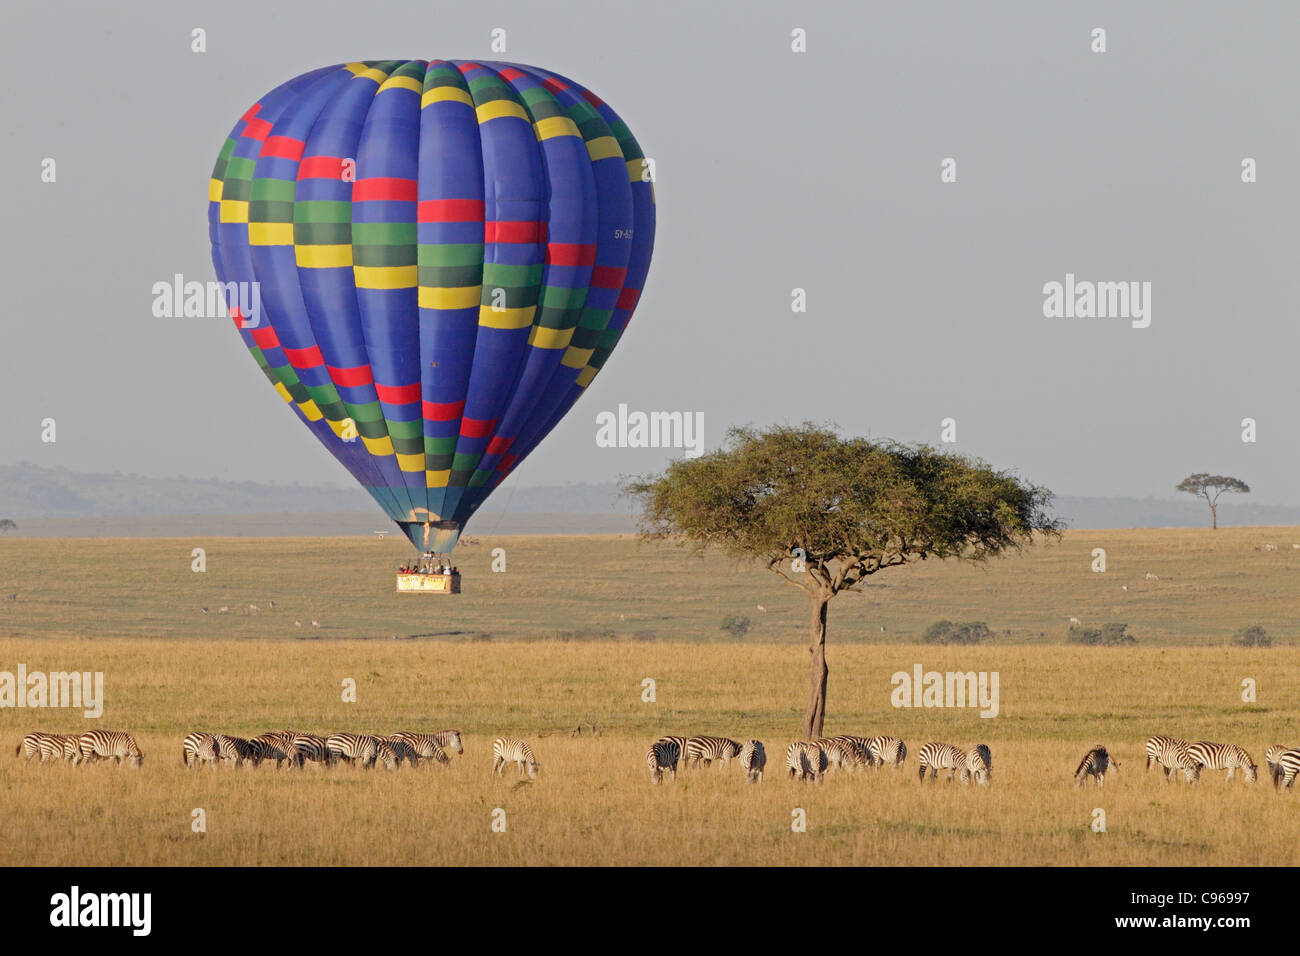 Hot air balloon over the Masai Mara - Stock Image